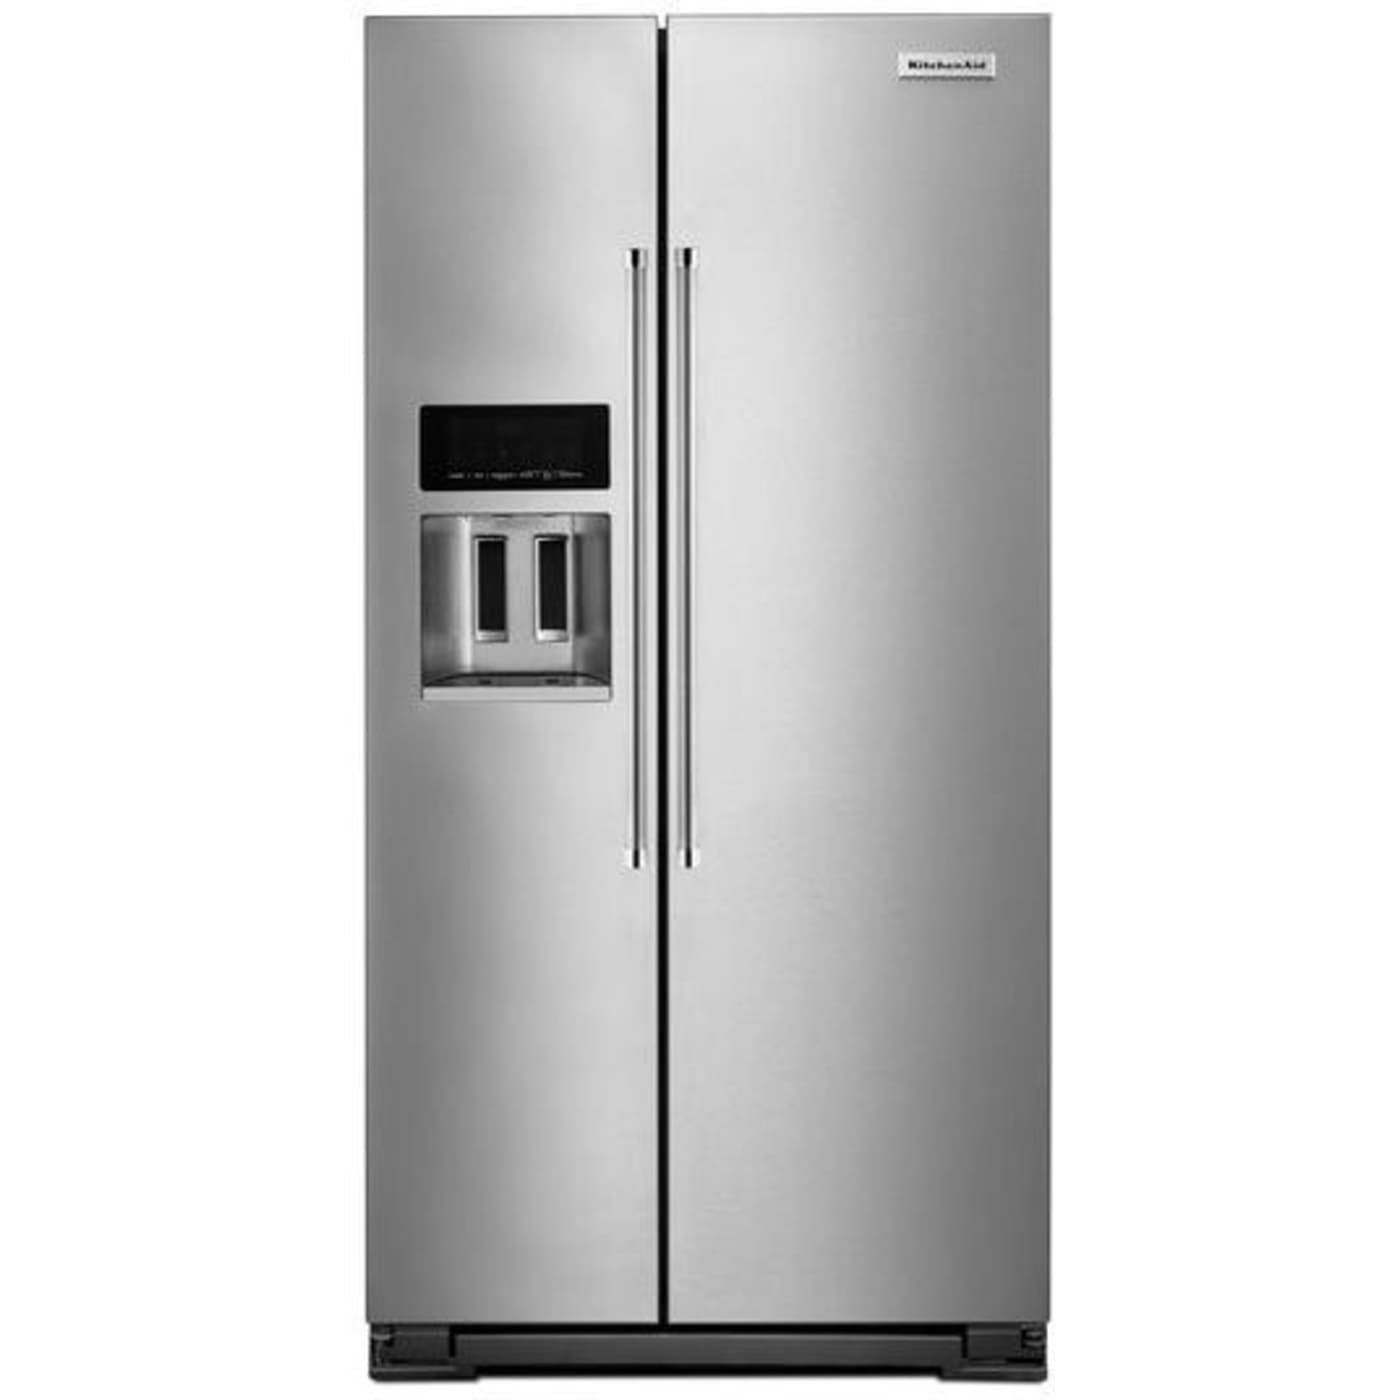 Delicieux Stainless Steel Counter Depth Side By Side Refrigerator. KitchenAid KRSC503ESS  ...